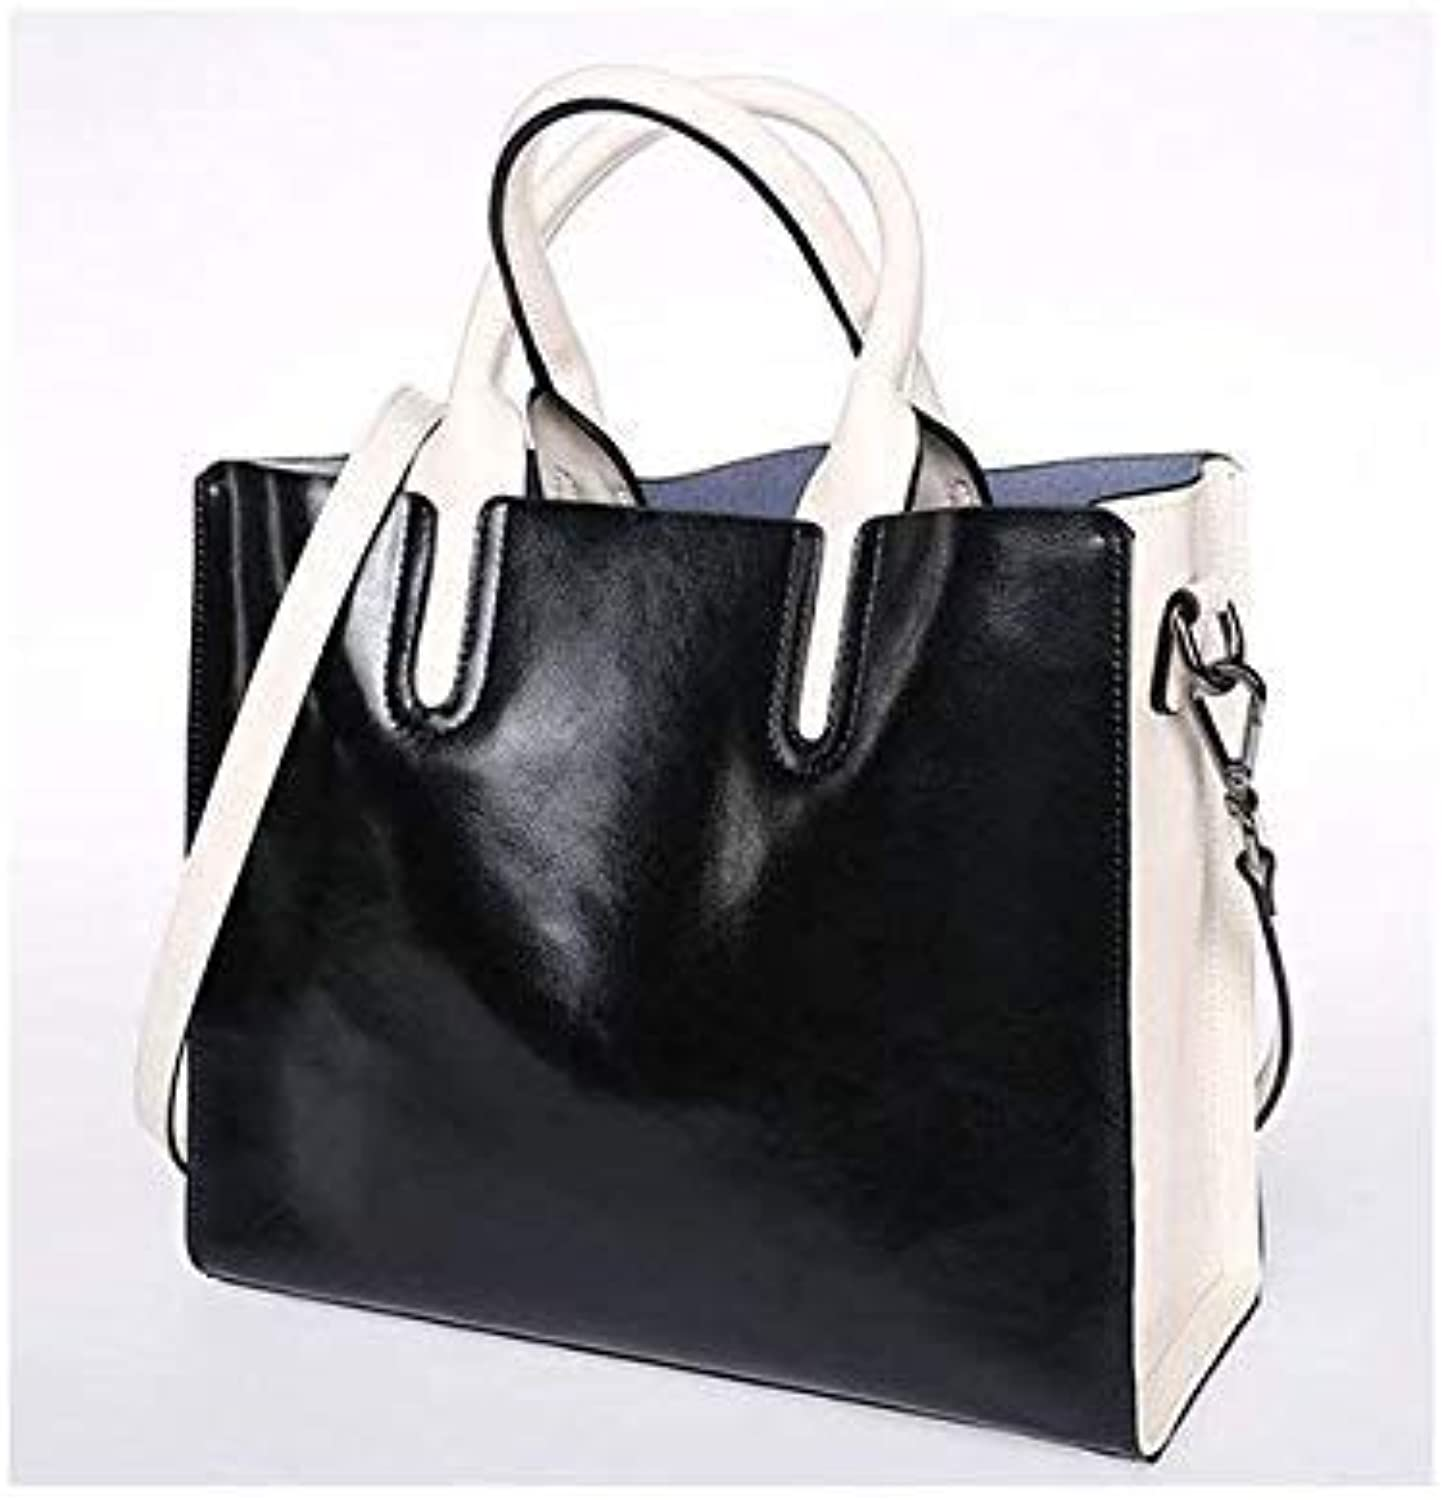 Bloomerang Hot Sale  Natural Cow Leather Crossbody Women Handbag Bags Luxury Casual Tote High Capacity Women's Shoulder Messenger Bag color Black with White